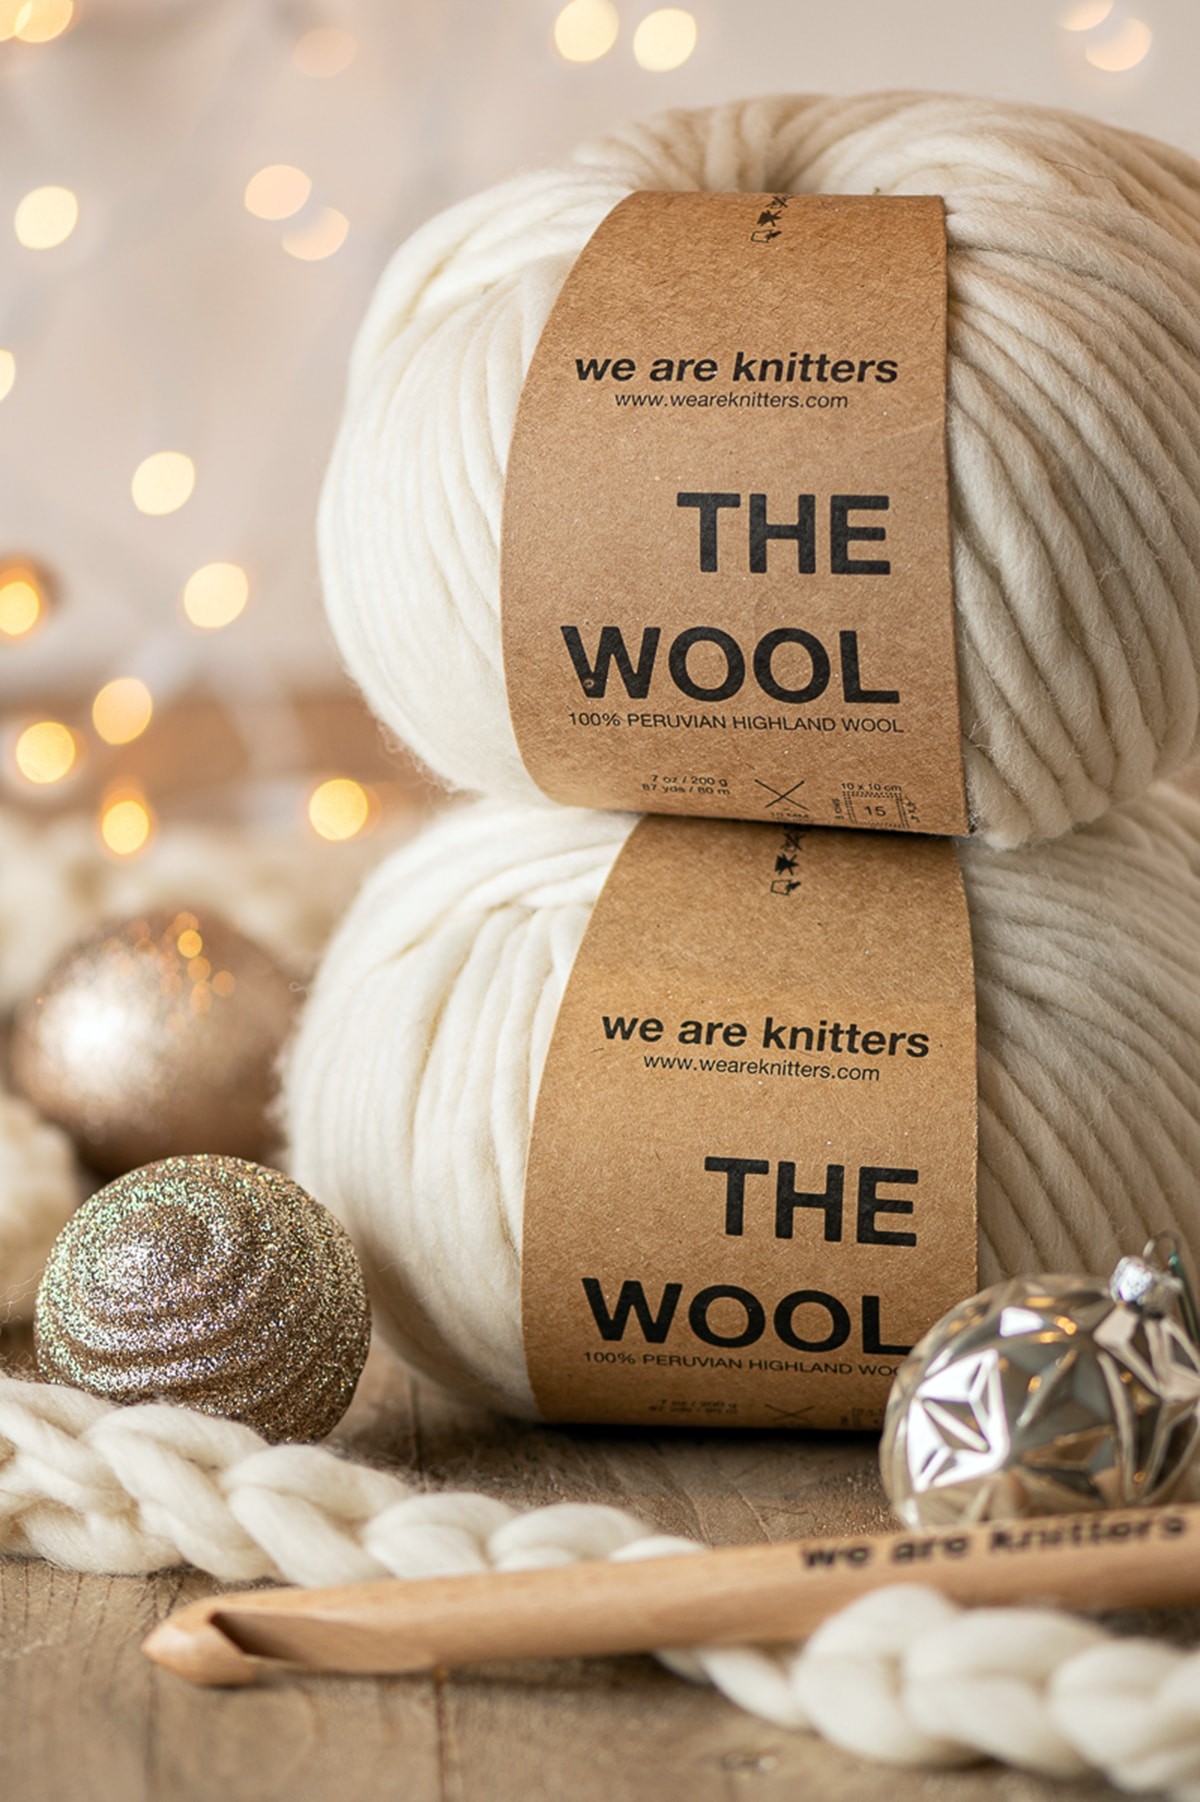 Two skeins of cream colored bulk wool stacked on top of each other surrounded by holiday ornaments, a wooden crochet hook and yellow twinkle lights in the background.